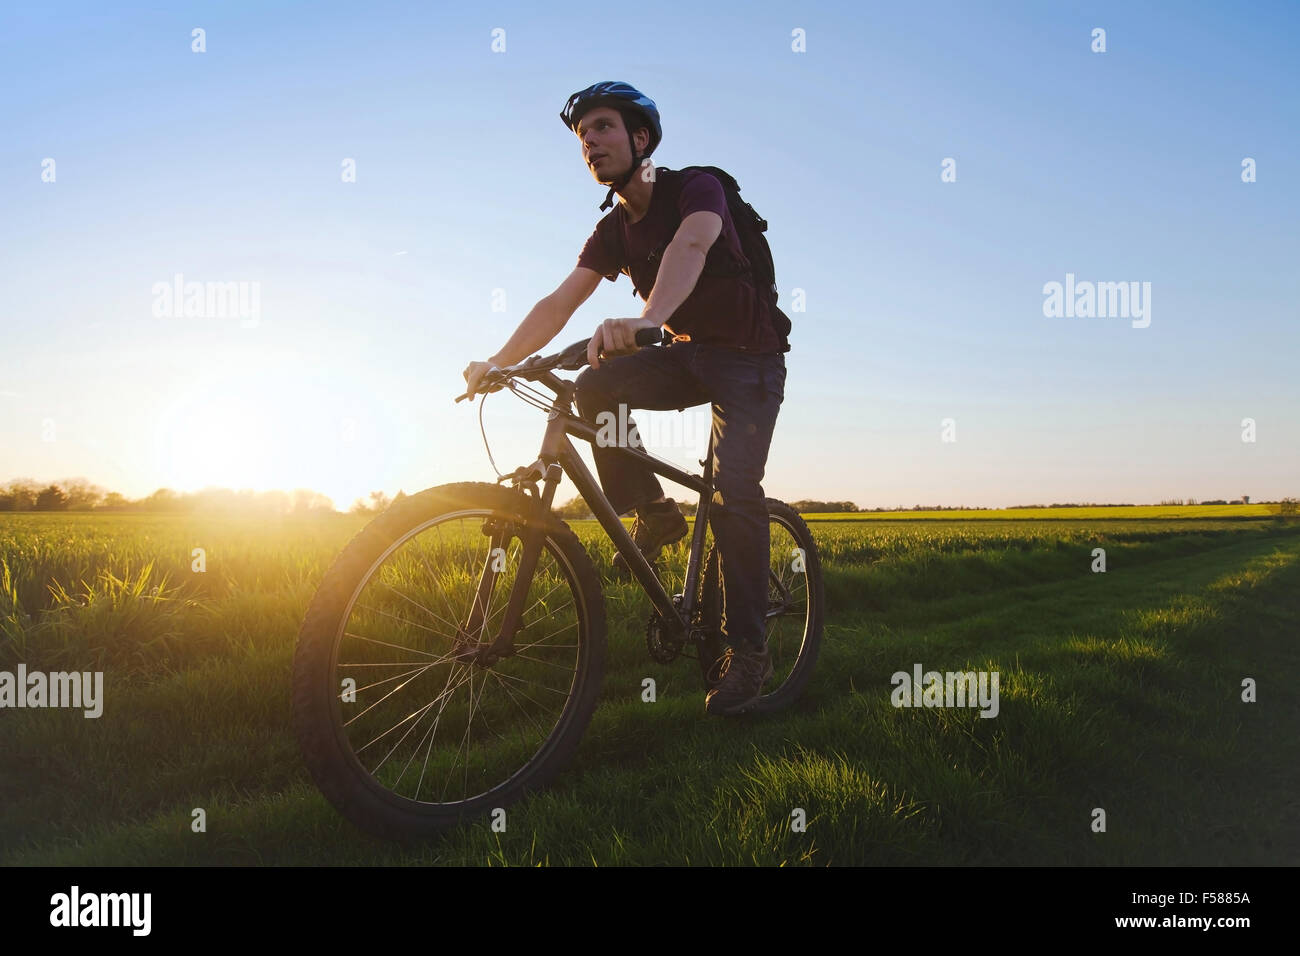 young sportive man riding bicycle outdoors at sunset - Stock Image